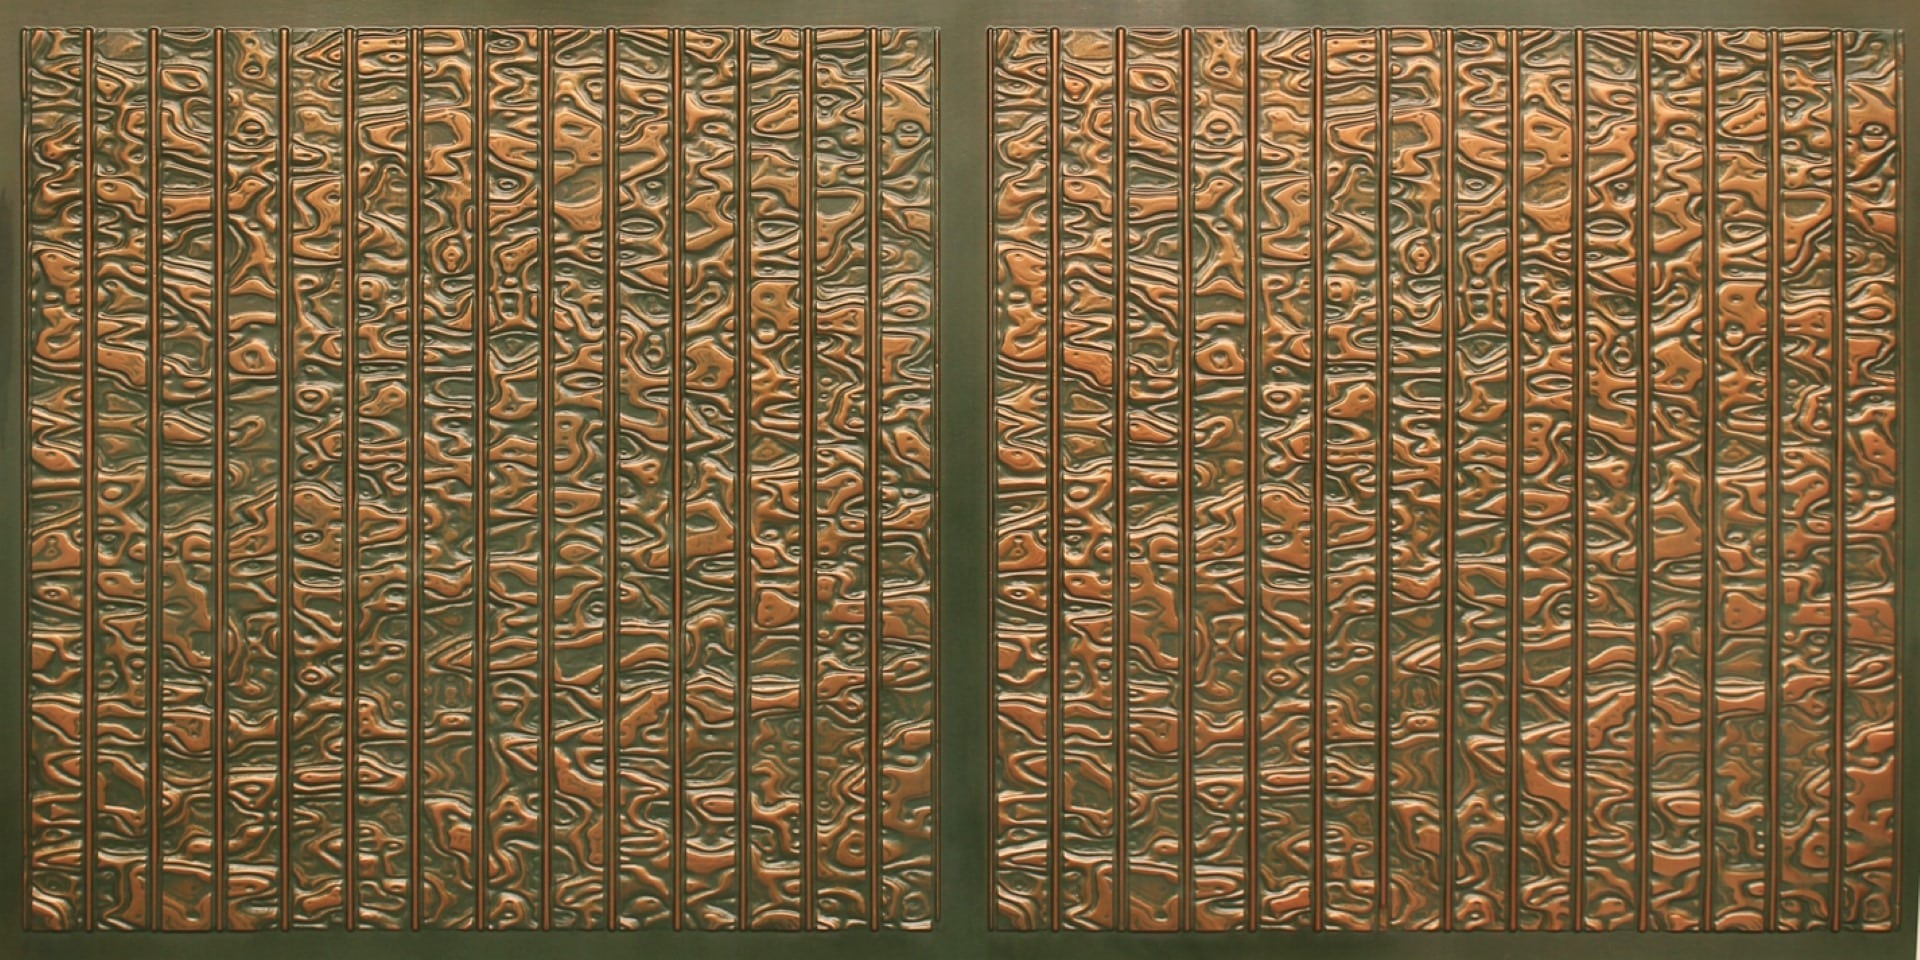 FT804 Faux Tin Ceiling Tile - Patina Copper